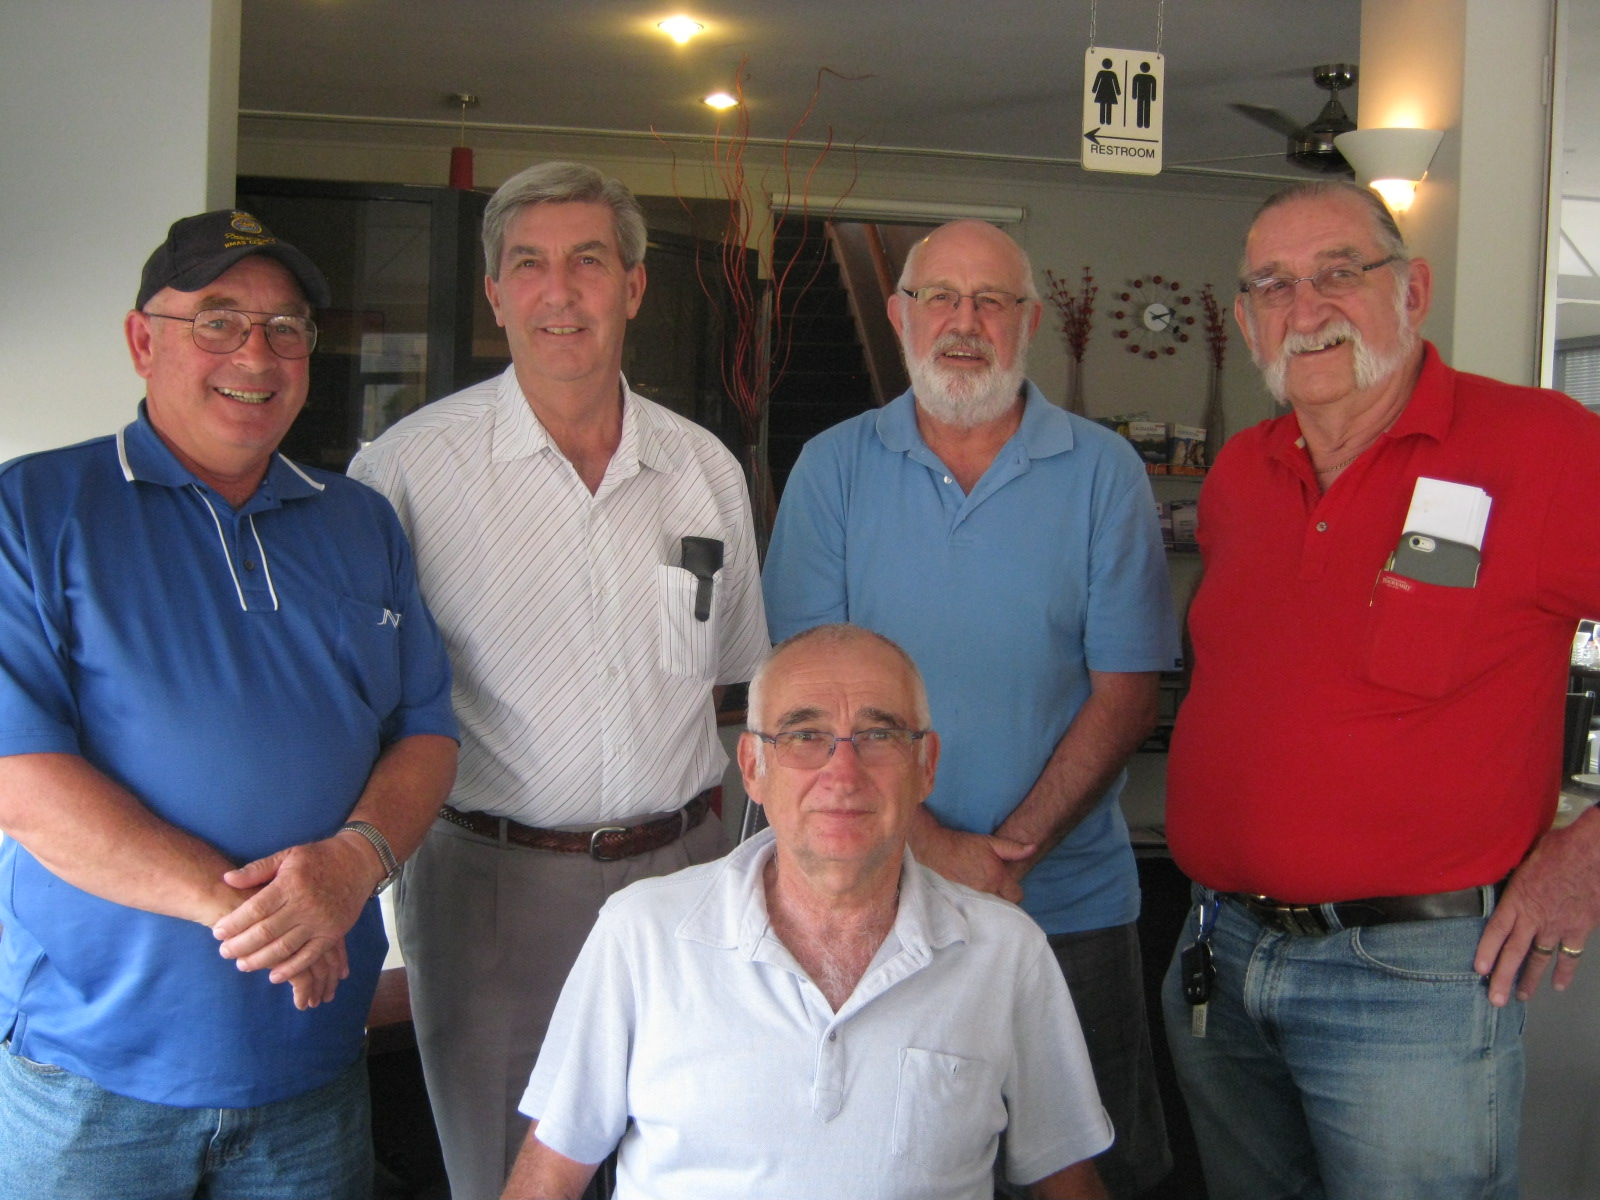 L-R Greg Amos, Maurie Graham, John Green, Dan Dubeld & Mitch Mitchell enjoying a mini get together in Tassie.